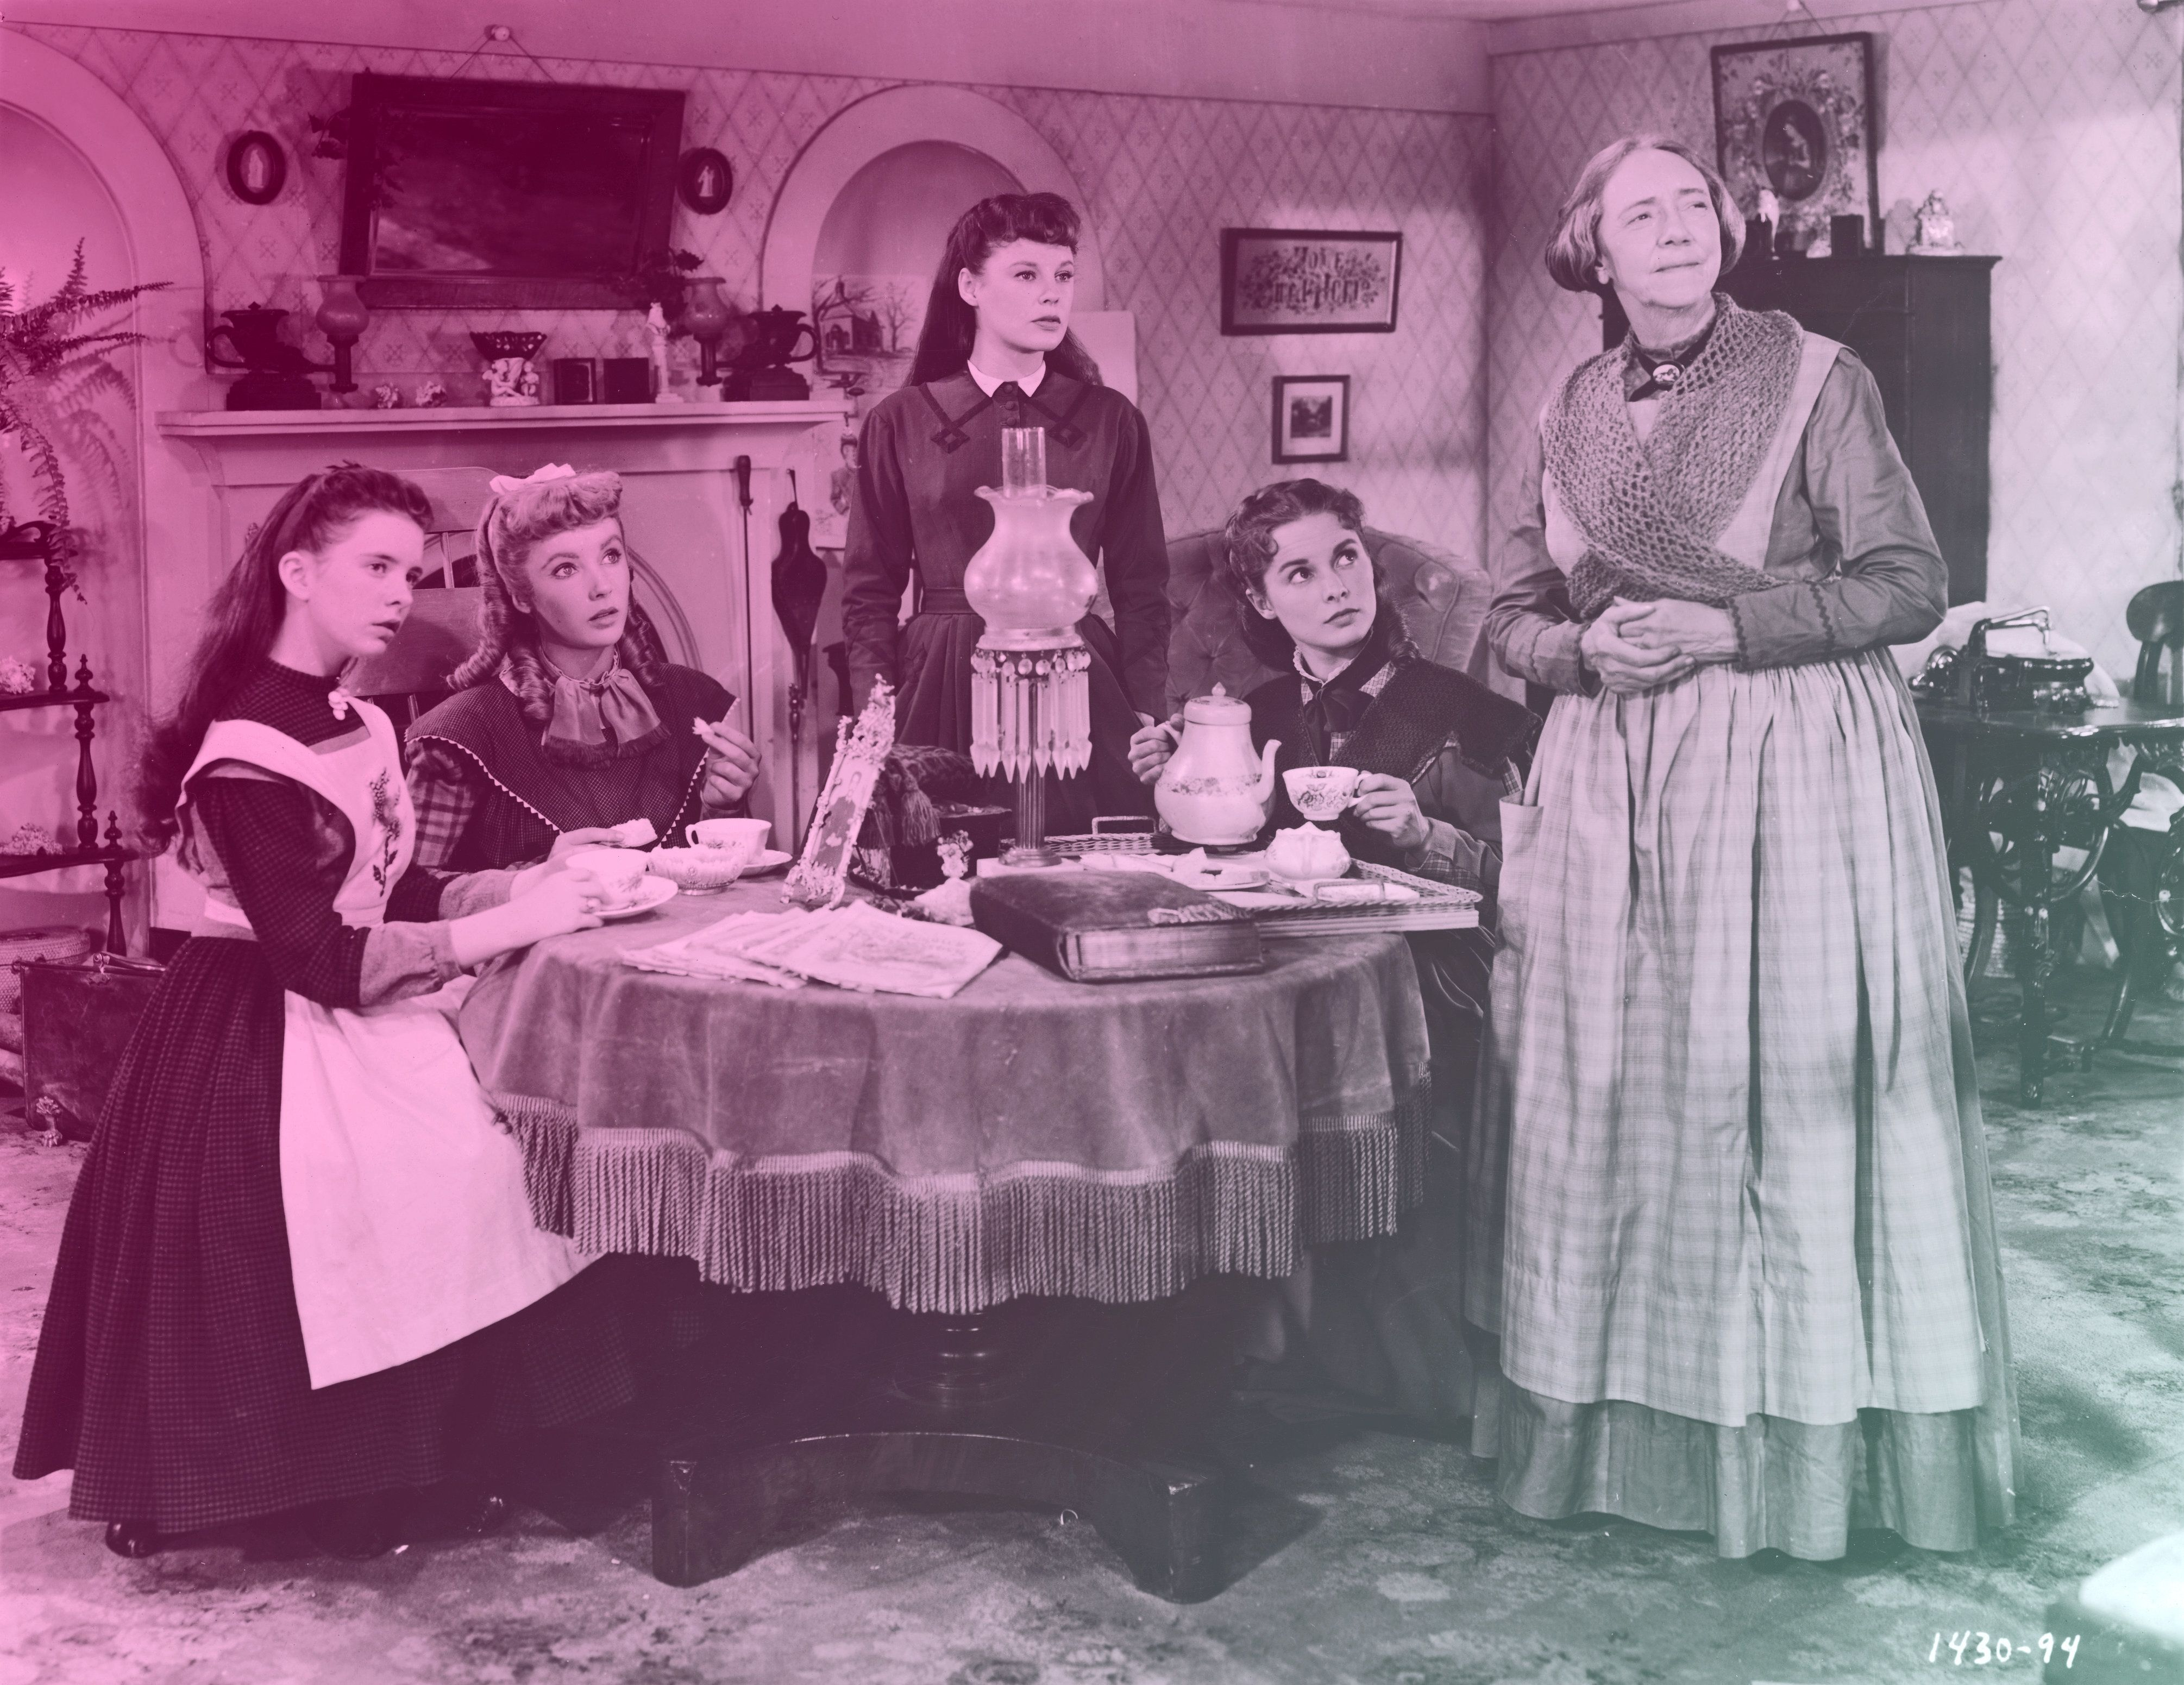 Actresses (left to right) Margaret O'Brien, Elizabeth Taylor, June Allyson, Janet Leigh and Lucile Watson in character as the